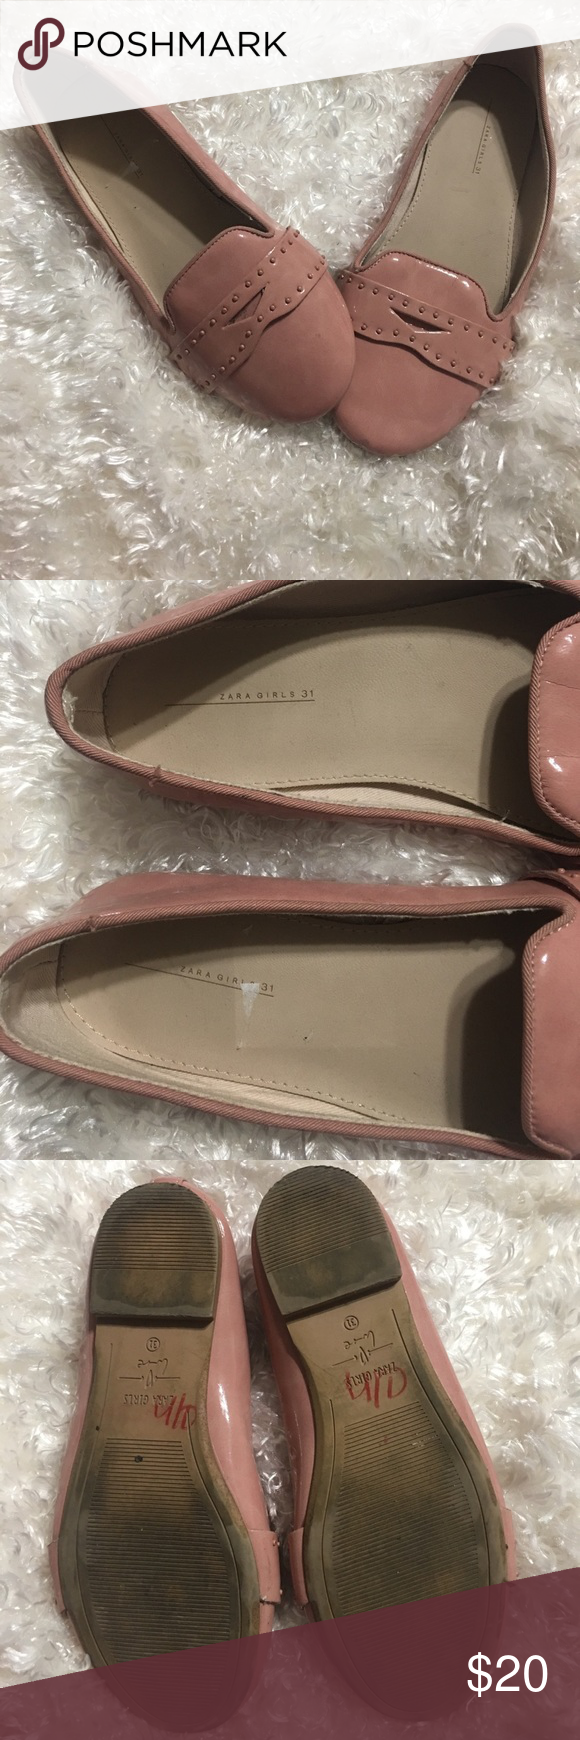 Zara girls flats Super cute dusty rose colored Zara Girls flats. They are used and have a few scuffs. Please see all photos, feel free to ask any questions and as always offers are welcome. Size 31 converts to size 1 us in girls. Zara Shoes Dress Shoes